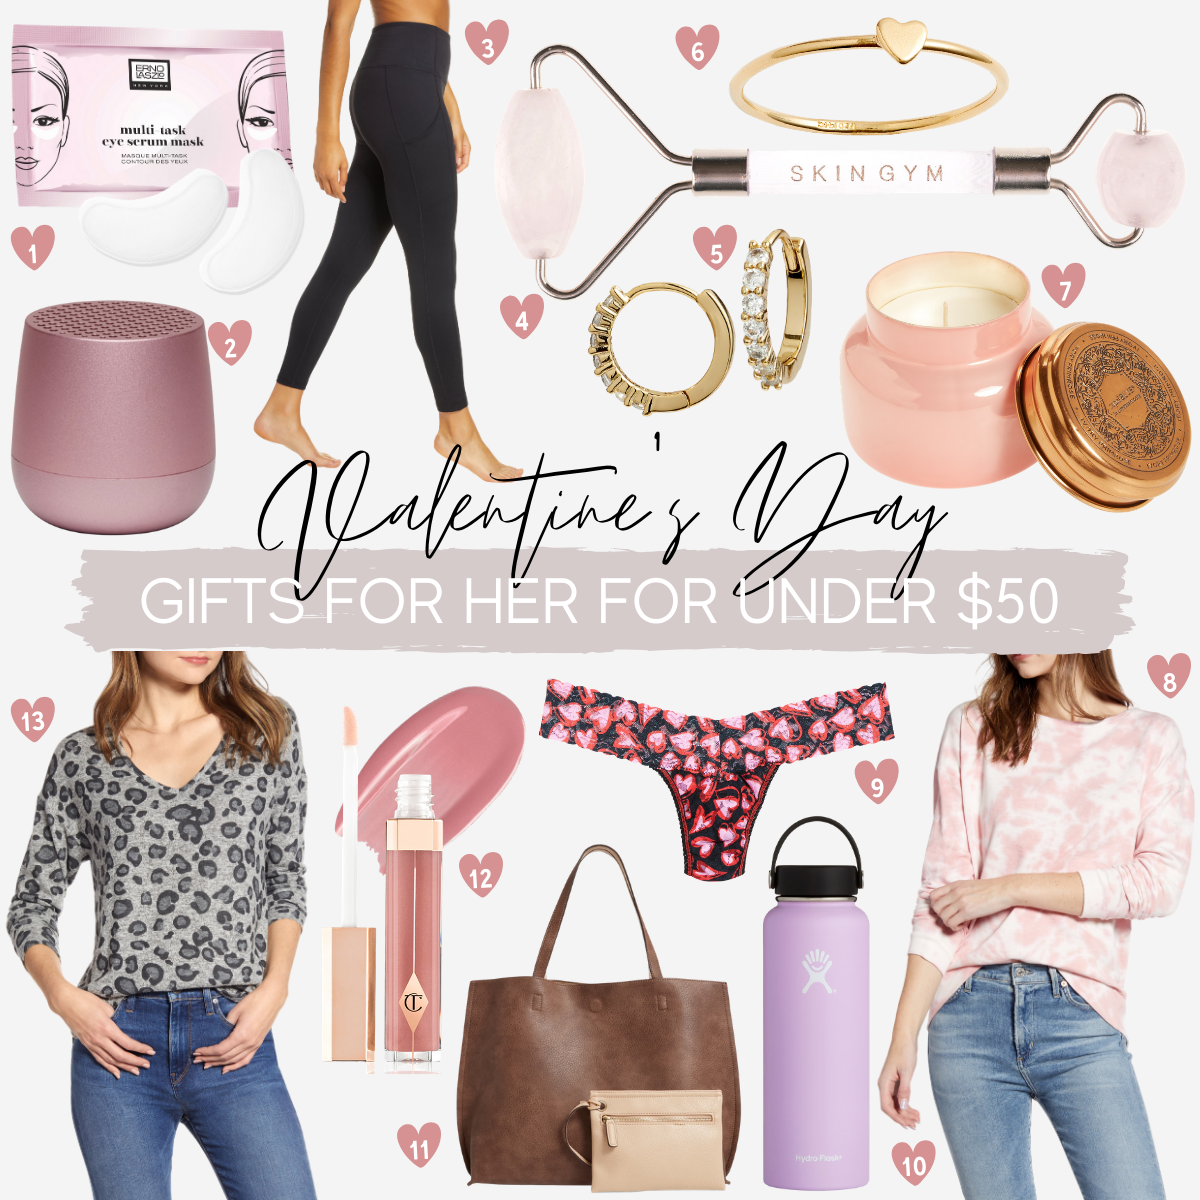 Valentine's Day gifts under $50 | Valentine's Day Gifts Under $50 by popular Houston life and style blog, Haute and Humid: collage image of Nordstrom Multi-Task Eye Serum Mask ERNO LASZLO, Nordstrom MINO Bluetooth® Speaker LEXON, Nordstrom Live In High Waist Pocket 7/8 Leggings ZELLA, Nordstrom Rose Quartz Crystal Facial Roller SKIN GYM, Nordstrom Pavé Half Stone Huggie Hoop Earrings NORDSTROM, Nordstrom Ryanne Heart Ring SET & STONES, Nordstrom Capri Iridescent Jar Candle ANTHROPOLOGIE HOME, Nordstrom Tie Dye Sweatshirt CENY, Nordstrom Love Potion Low Rise Thong HANKY PANKY, Nordstrom 40-Ounce Wide Mouth Cap Bottle HYDRO FLASK, Nordstrom Reversible Faux Leather Tote & Wristlet STREET LEVEL, Nordstrom Pillow Talk Lip Lustre Lip Gloss CHARLOTTE TILBURY, and Nordstrom Cozy V-Neck Top GIBSON.